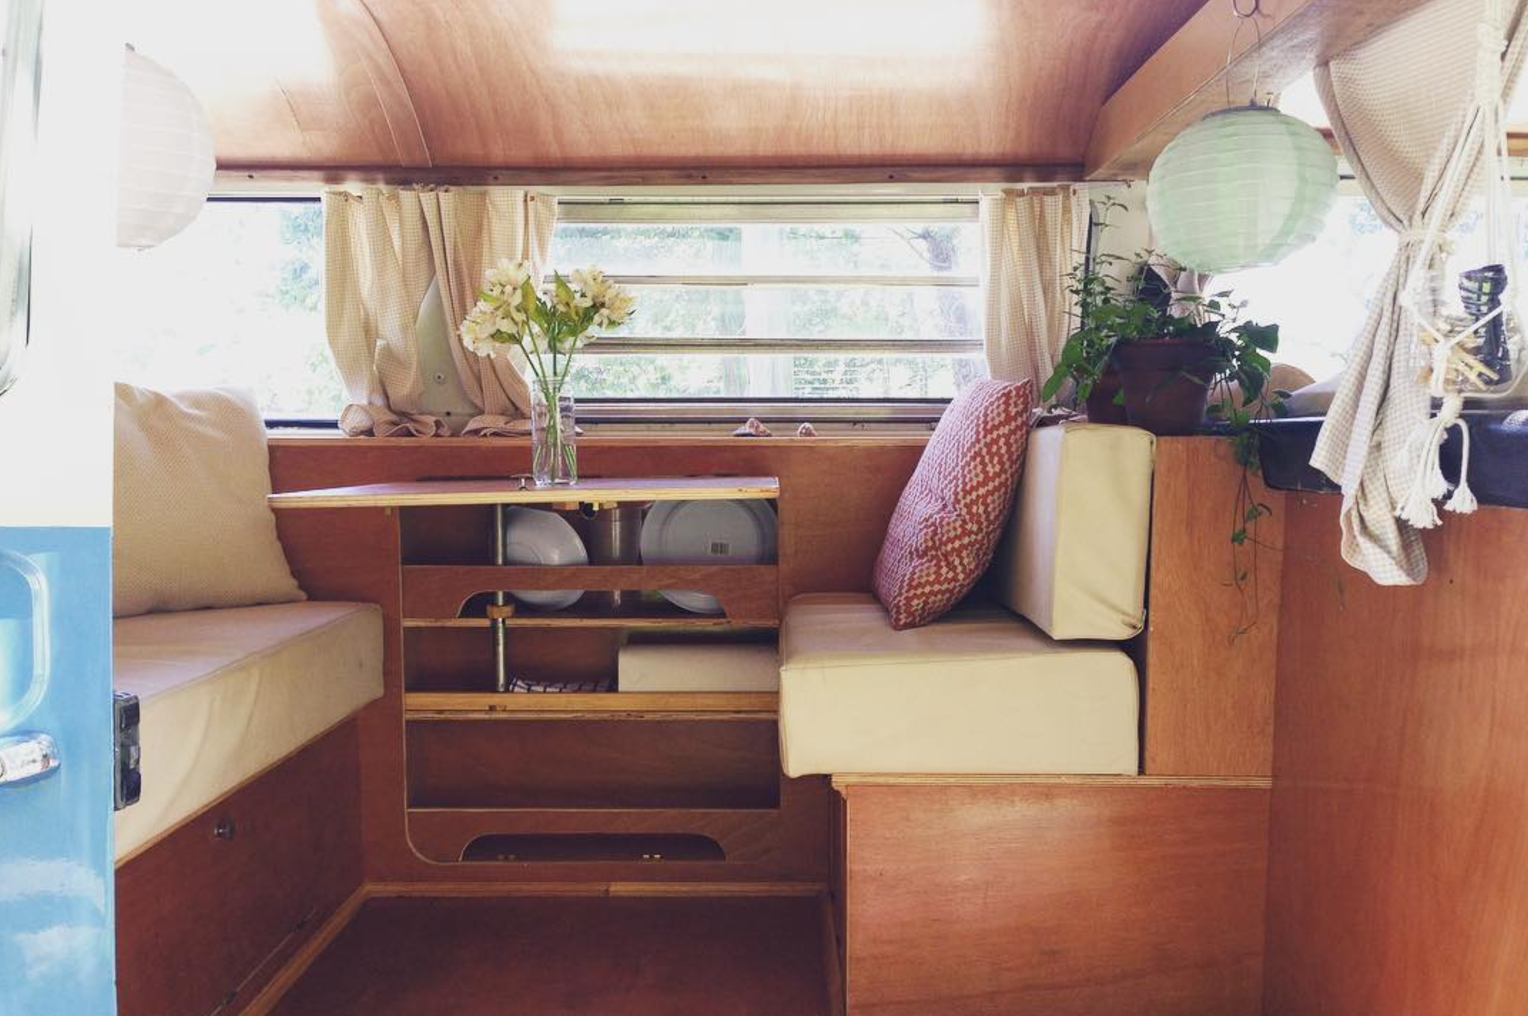 Mariel is a Costa Rican stylist, pilates teacher and macrame lover, living in her sweet ride decked in soft, wood tones.  Photo 5 of 11 in 9 Adventure Seekers Who Celebrate Small Space Living Through the Van Life